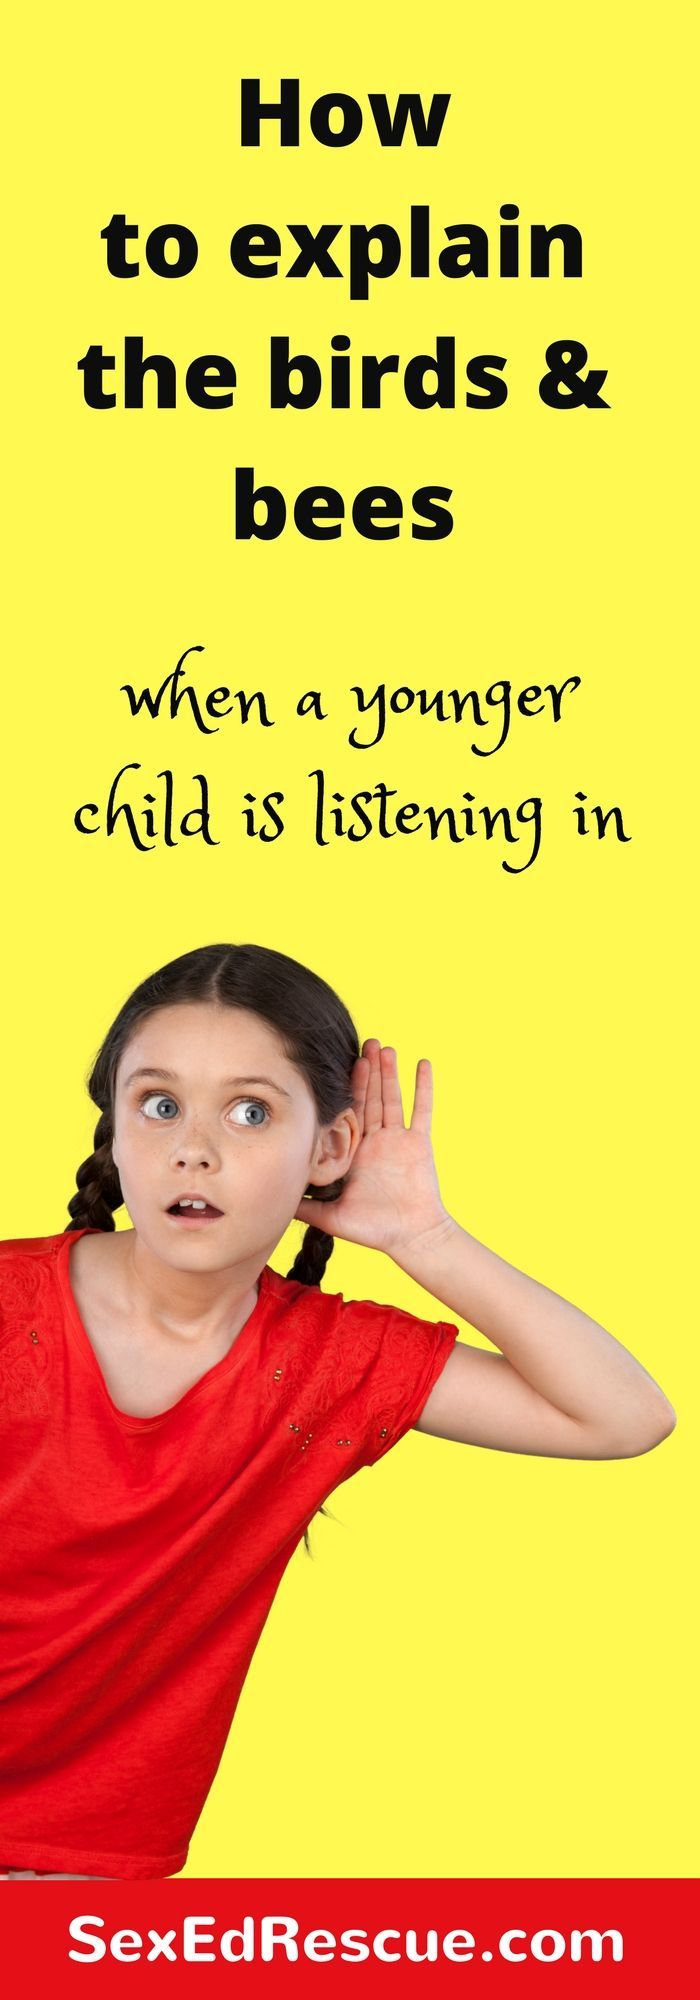 How to explain the birds and bees when younger children are listening in, can be challenging for many parents. But does it matter if they are listening in?